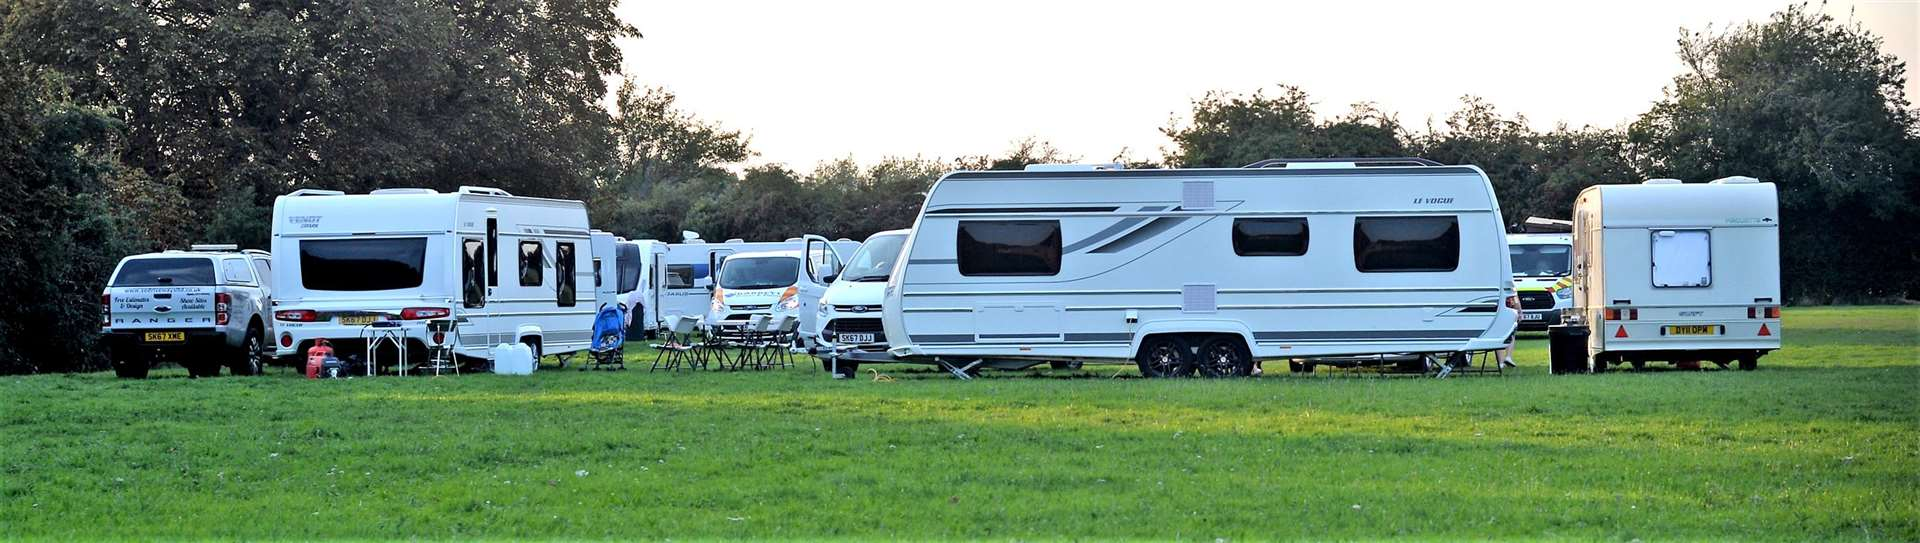 Travellers set up camp at St Felix Middle School, Fordham Road, Newmarket (3968104)